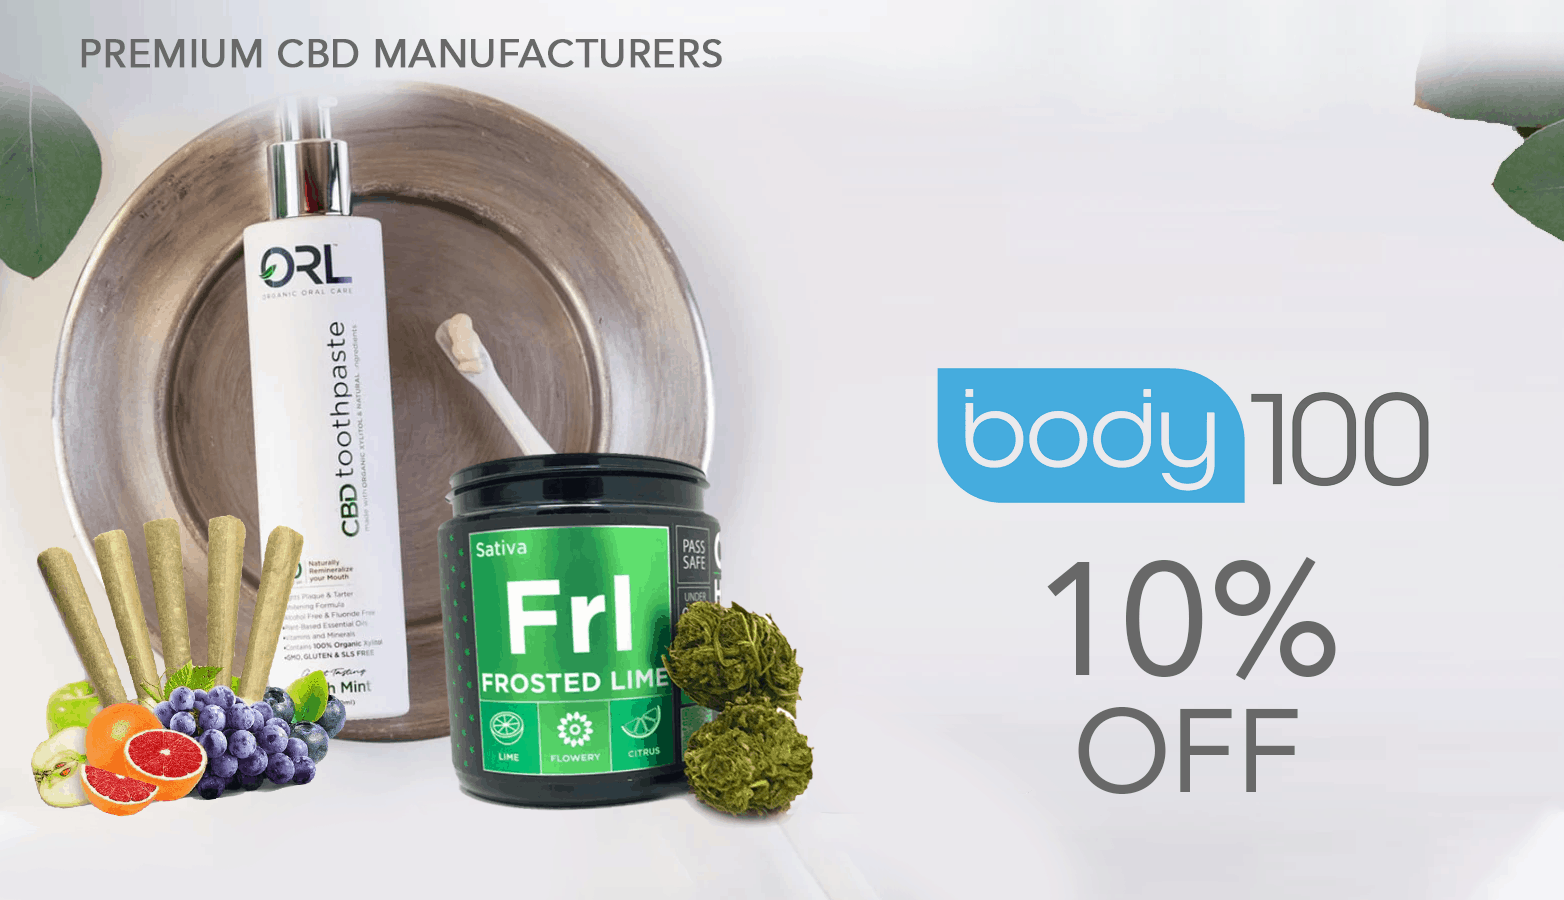 Body100 CBD Coupon Code Website